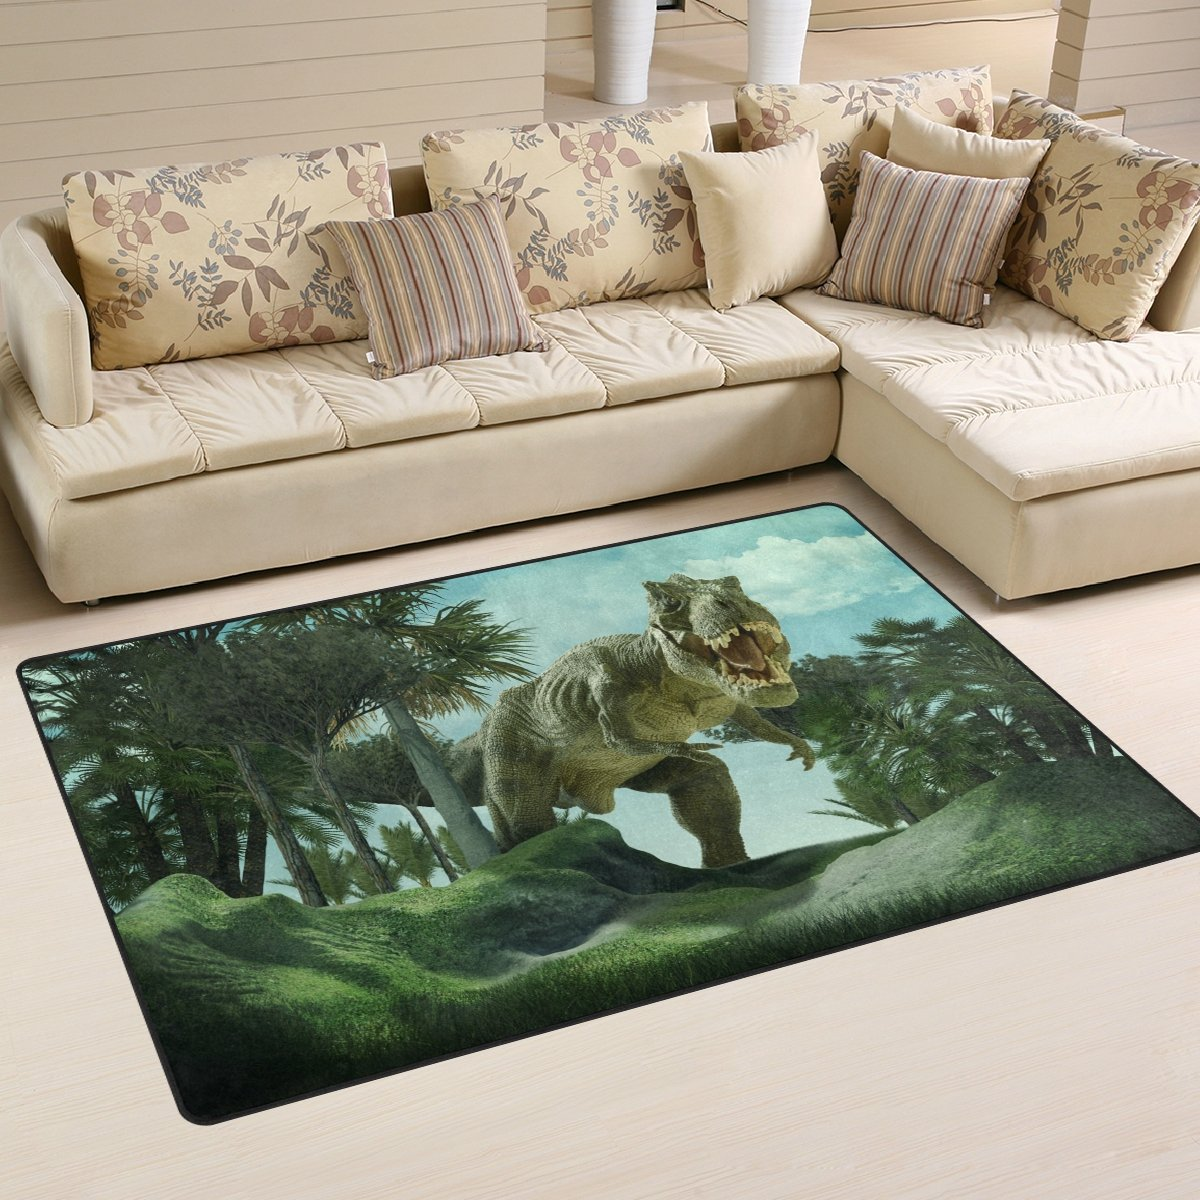 XiangHeFu Area Rugs for Living Dining Bedroom Doormats Decorative 3D Giant Dinosaur Destroy The Park 2'7 x 1'8 (31x20 Inches) Carpet Non-Slip Floor Mat Resting